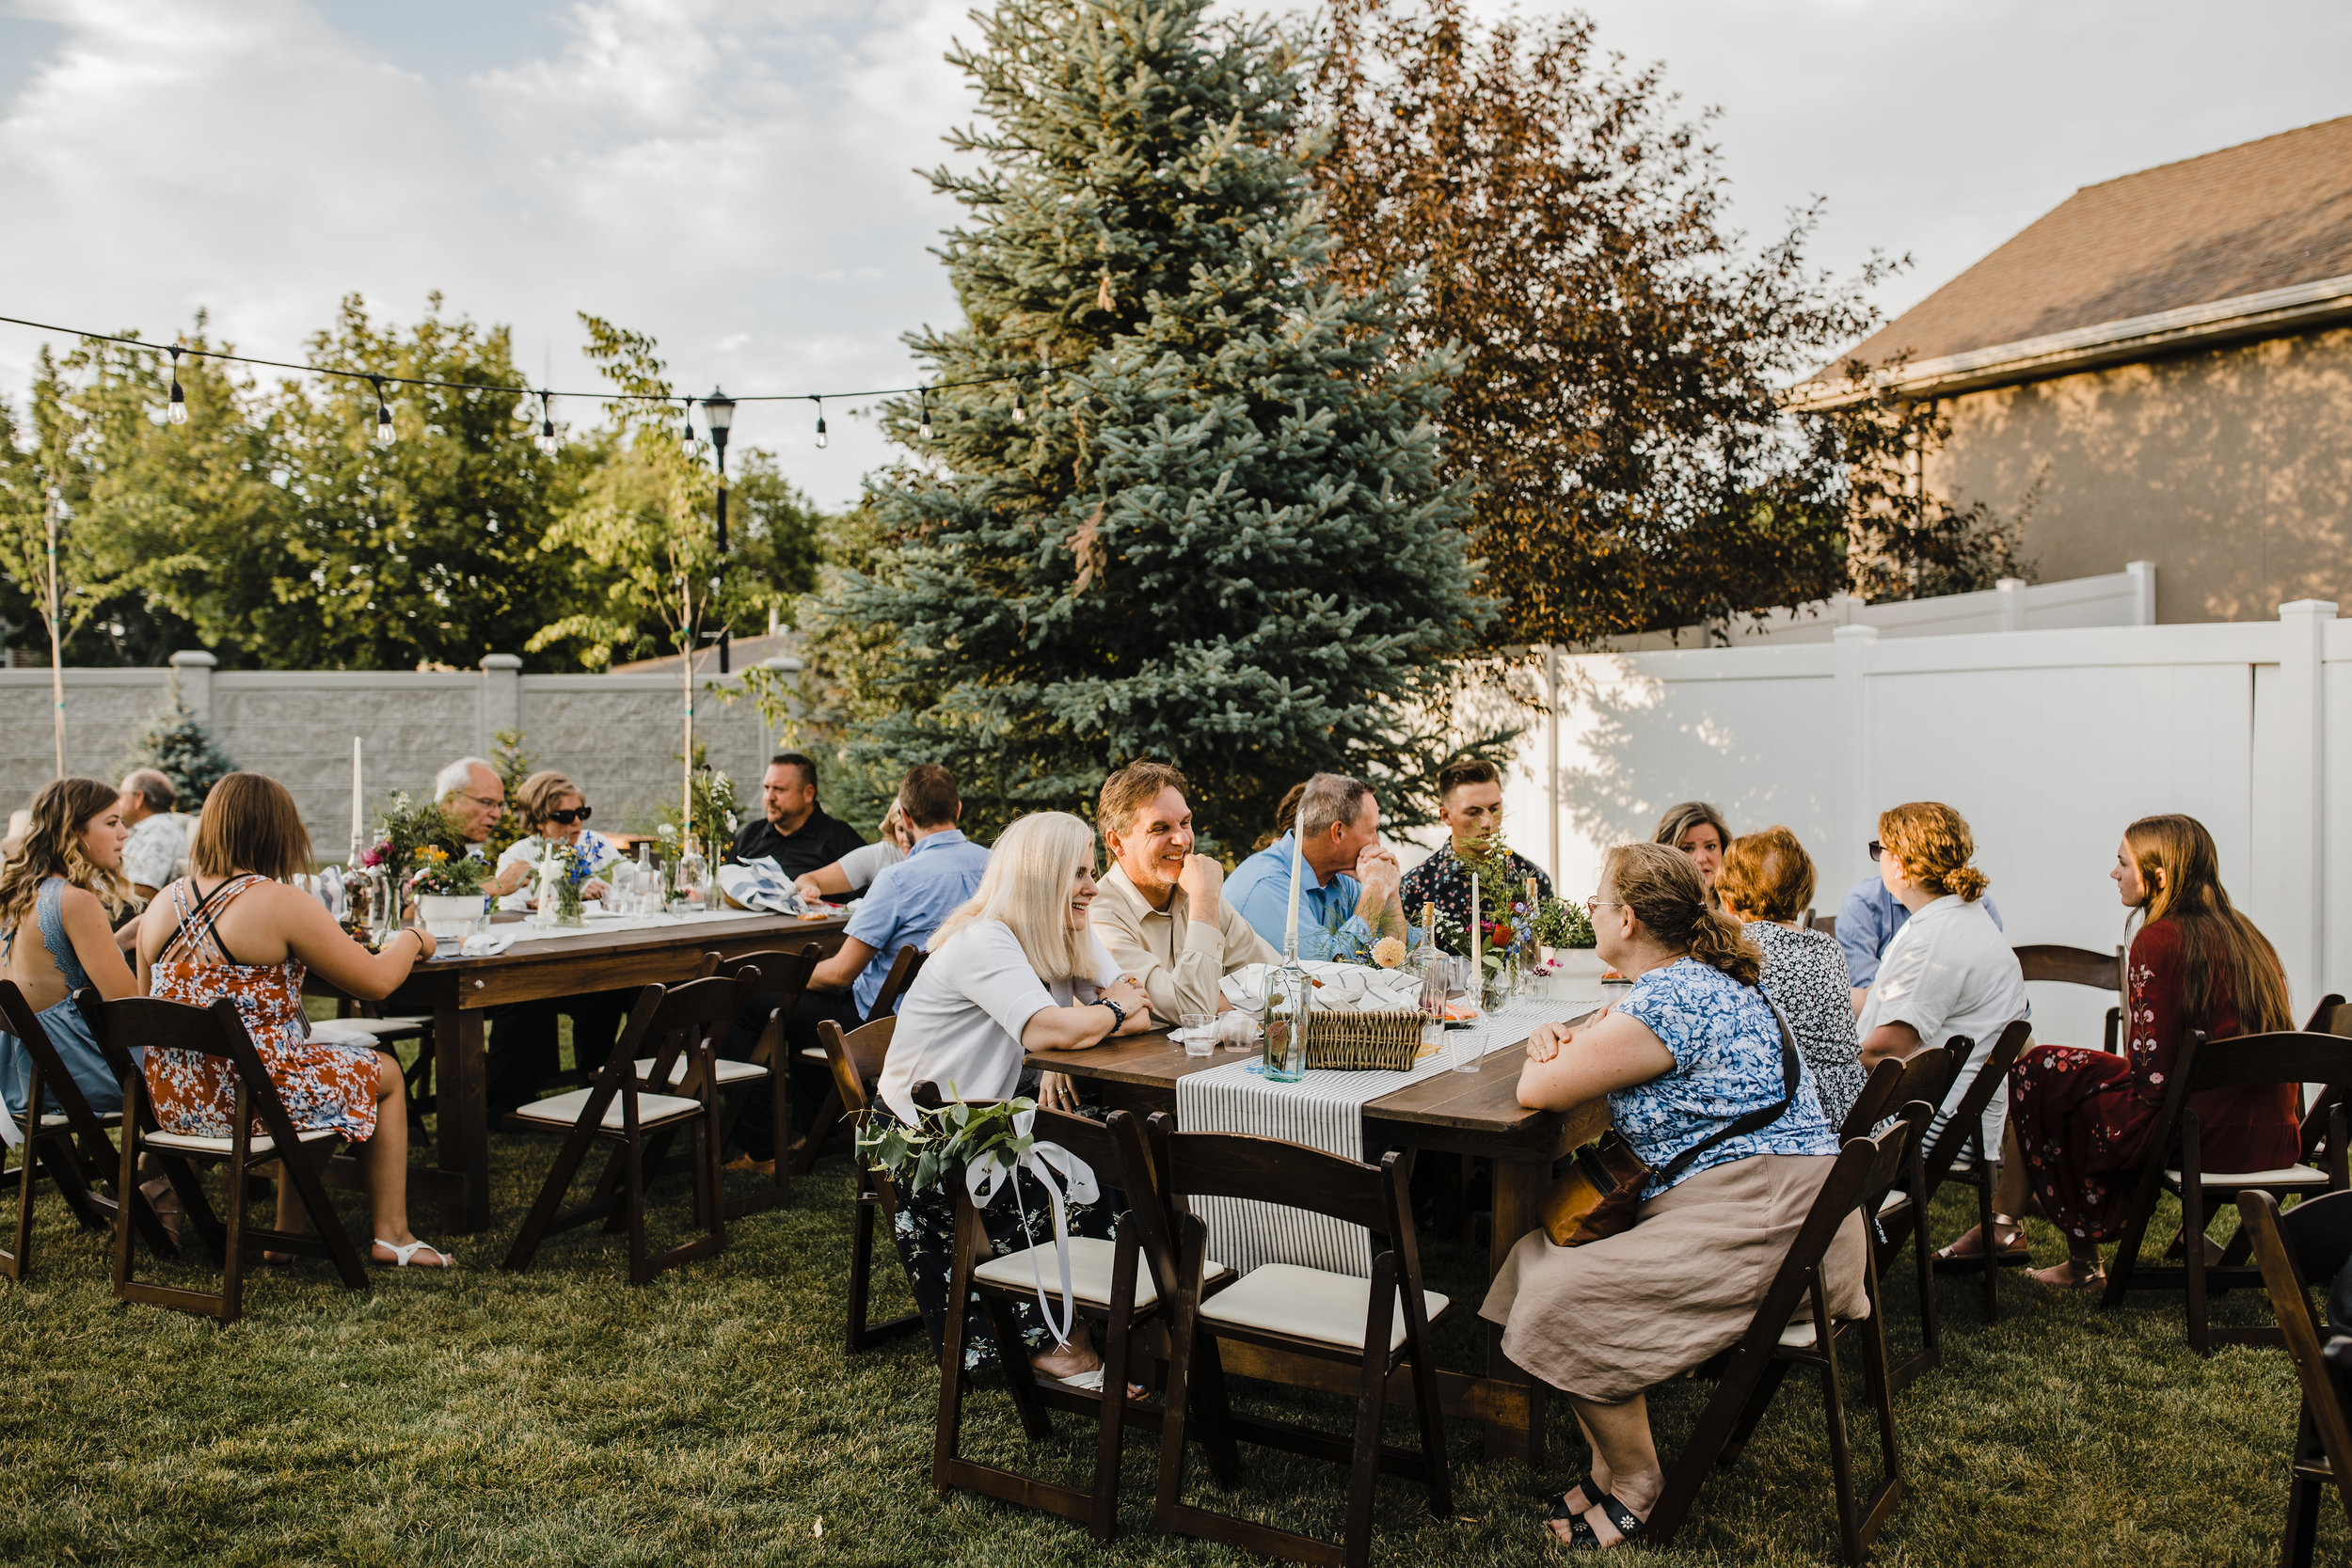 South Jordan Utah professional wedding photographer wedding guests cache valley photographer outdoor wedding tables wooden chairs string lights